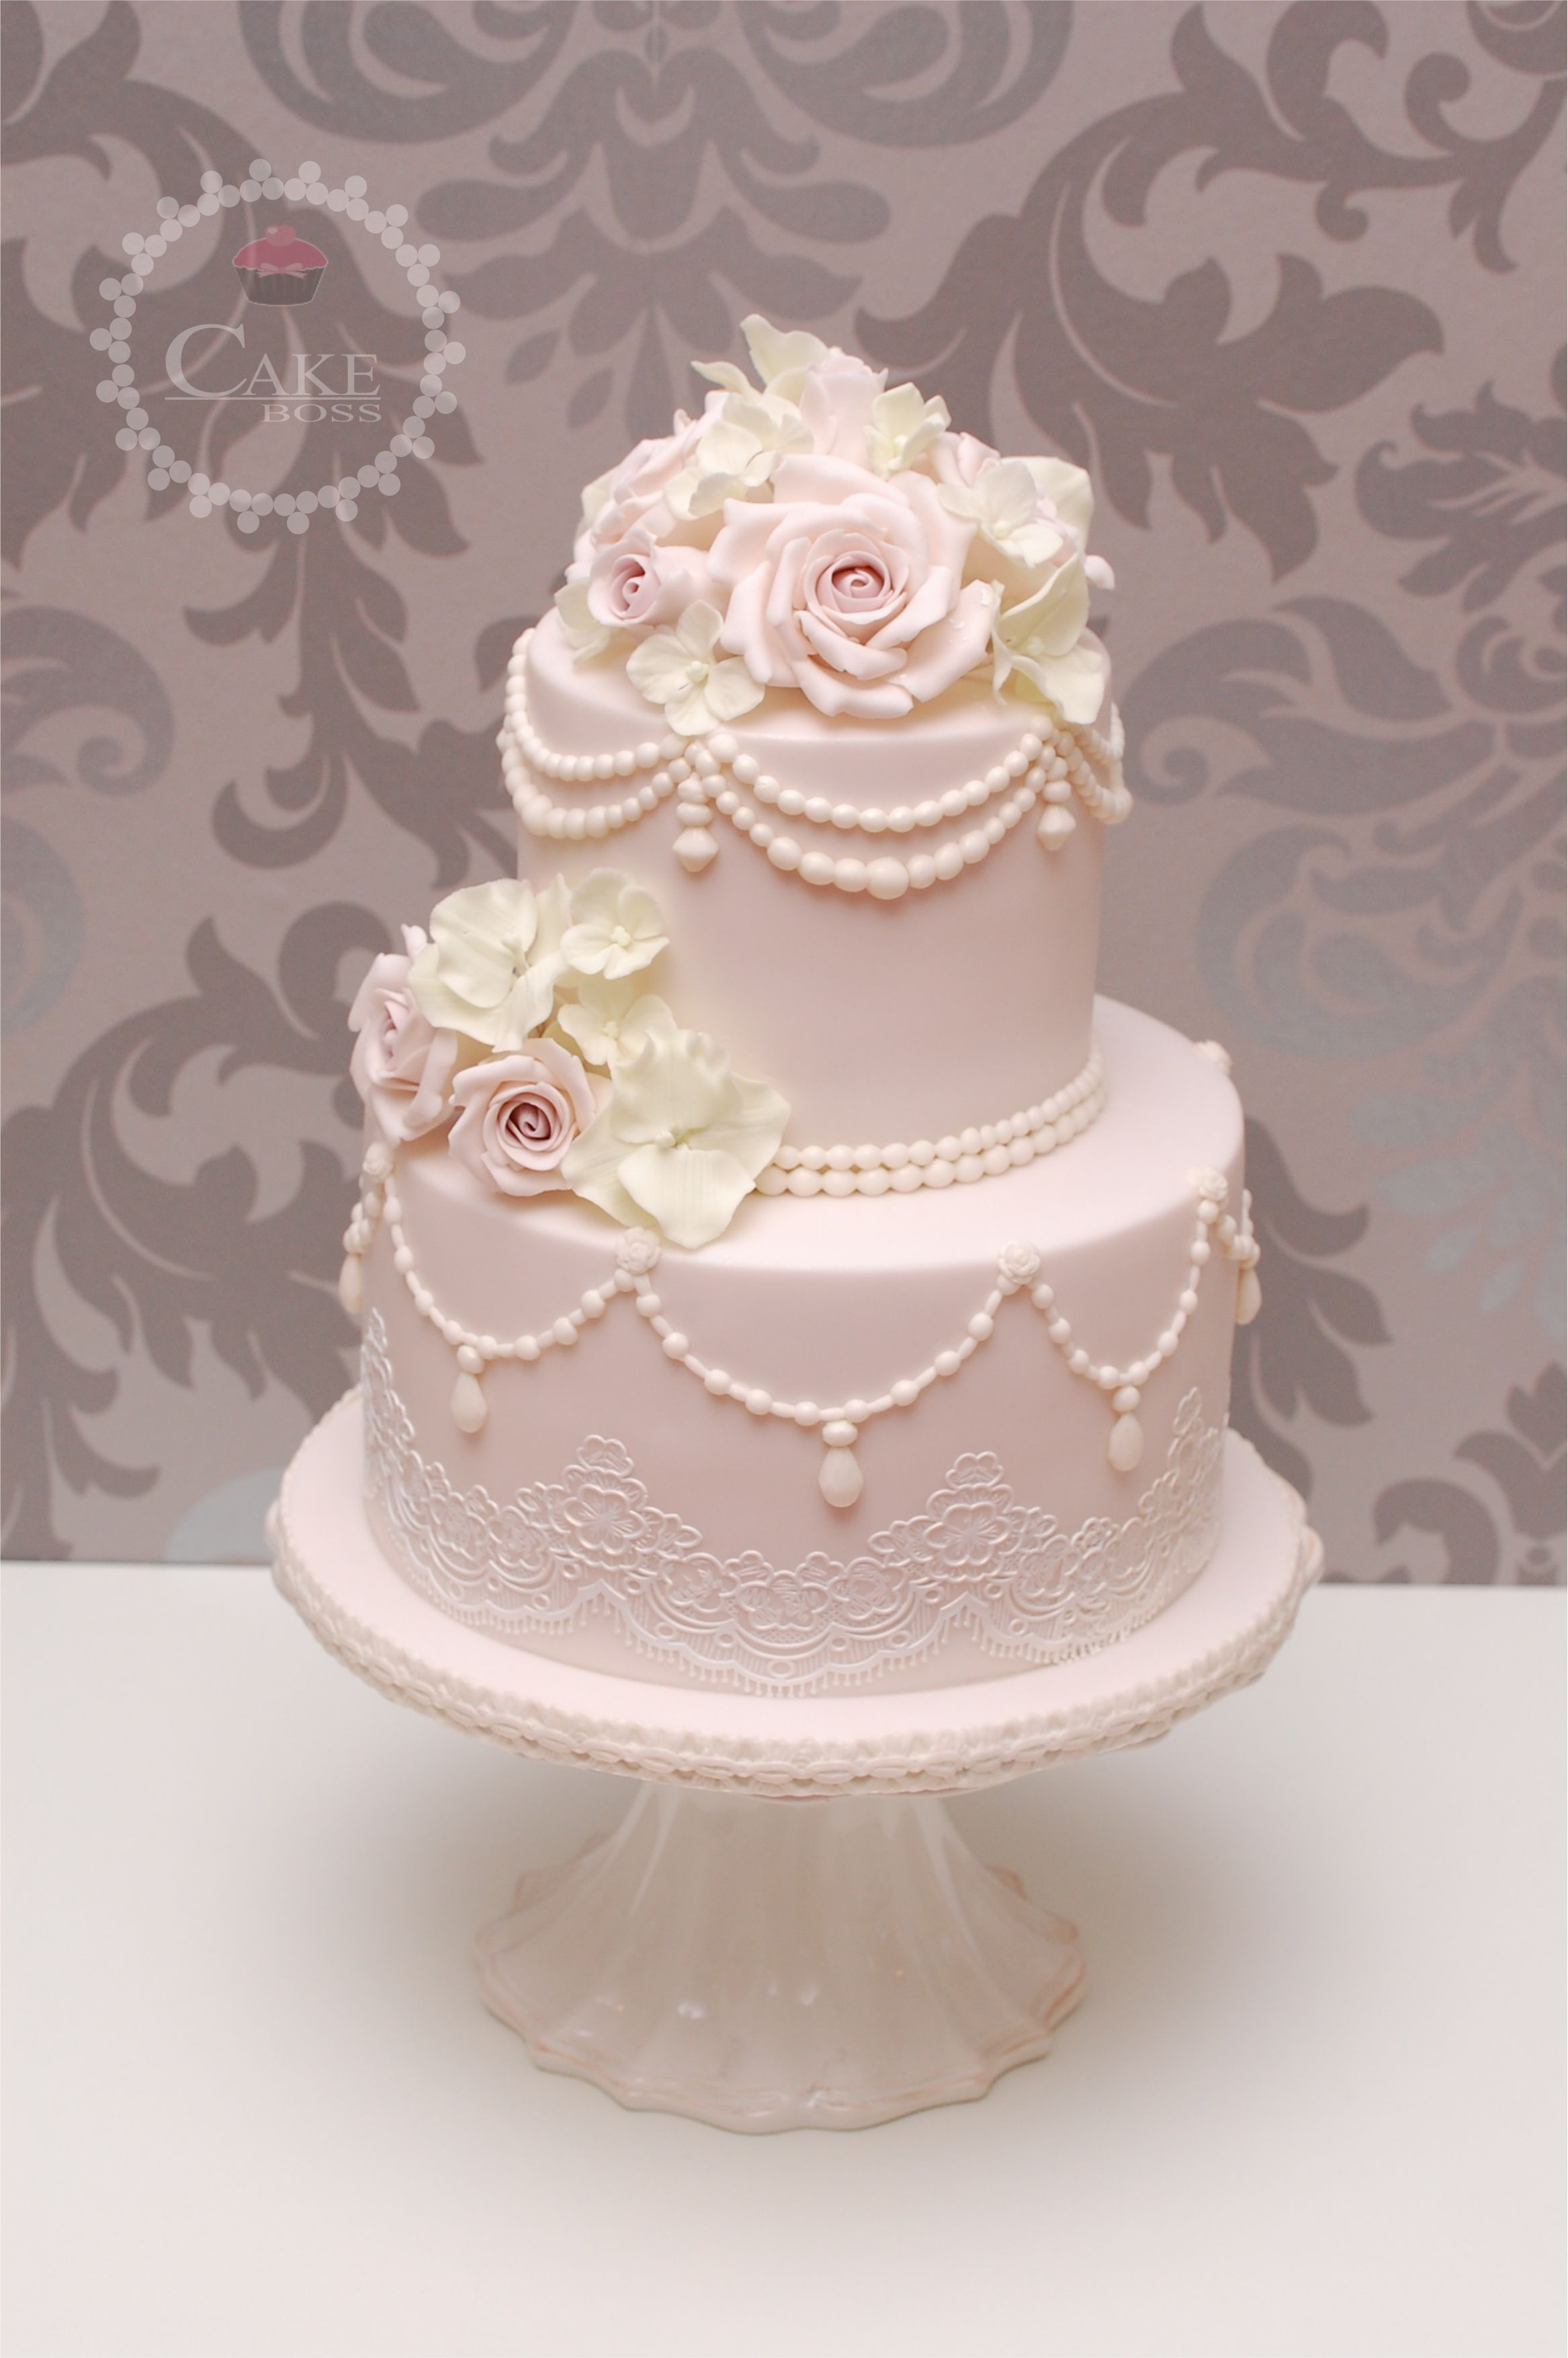 hochzeitstorte vintage cake pinterest wedding cake cake and fondant